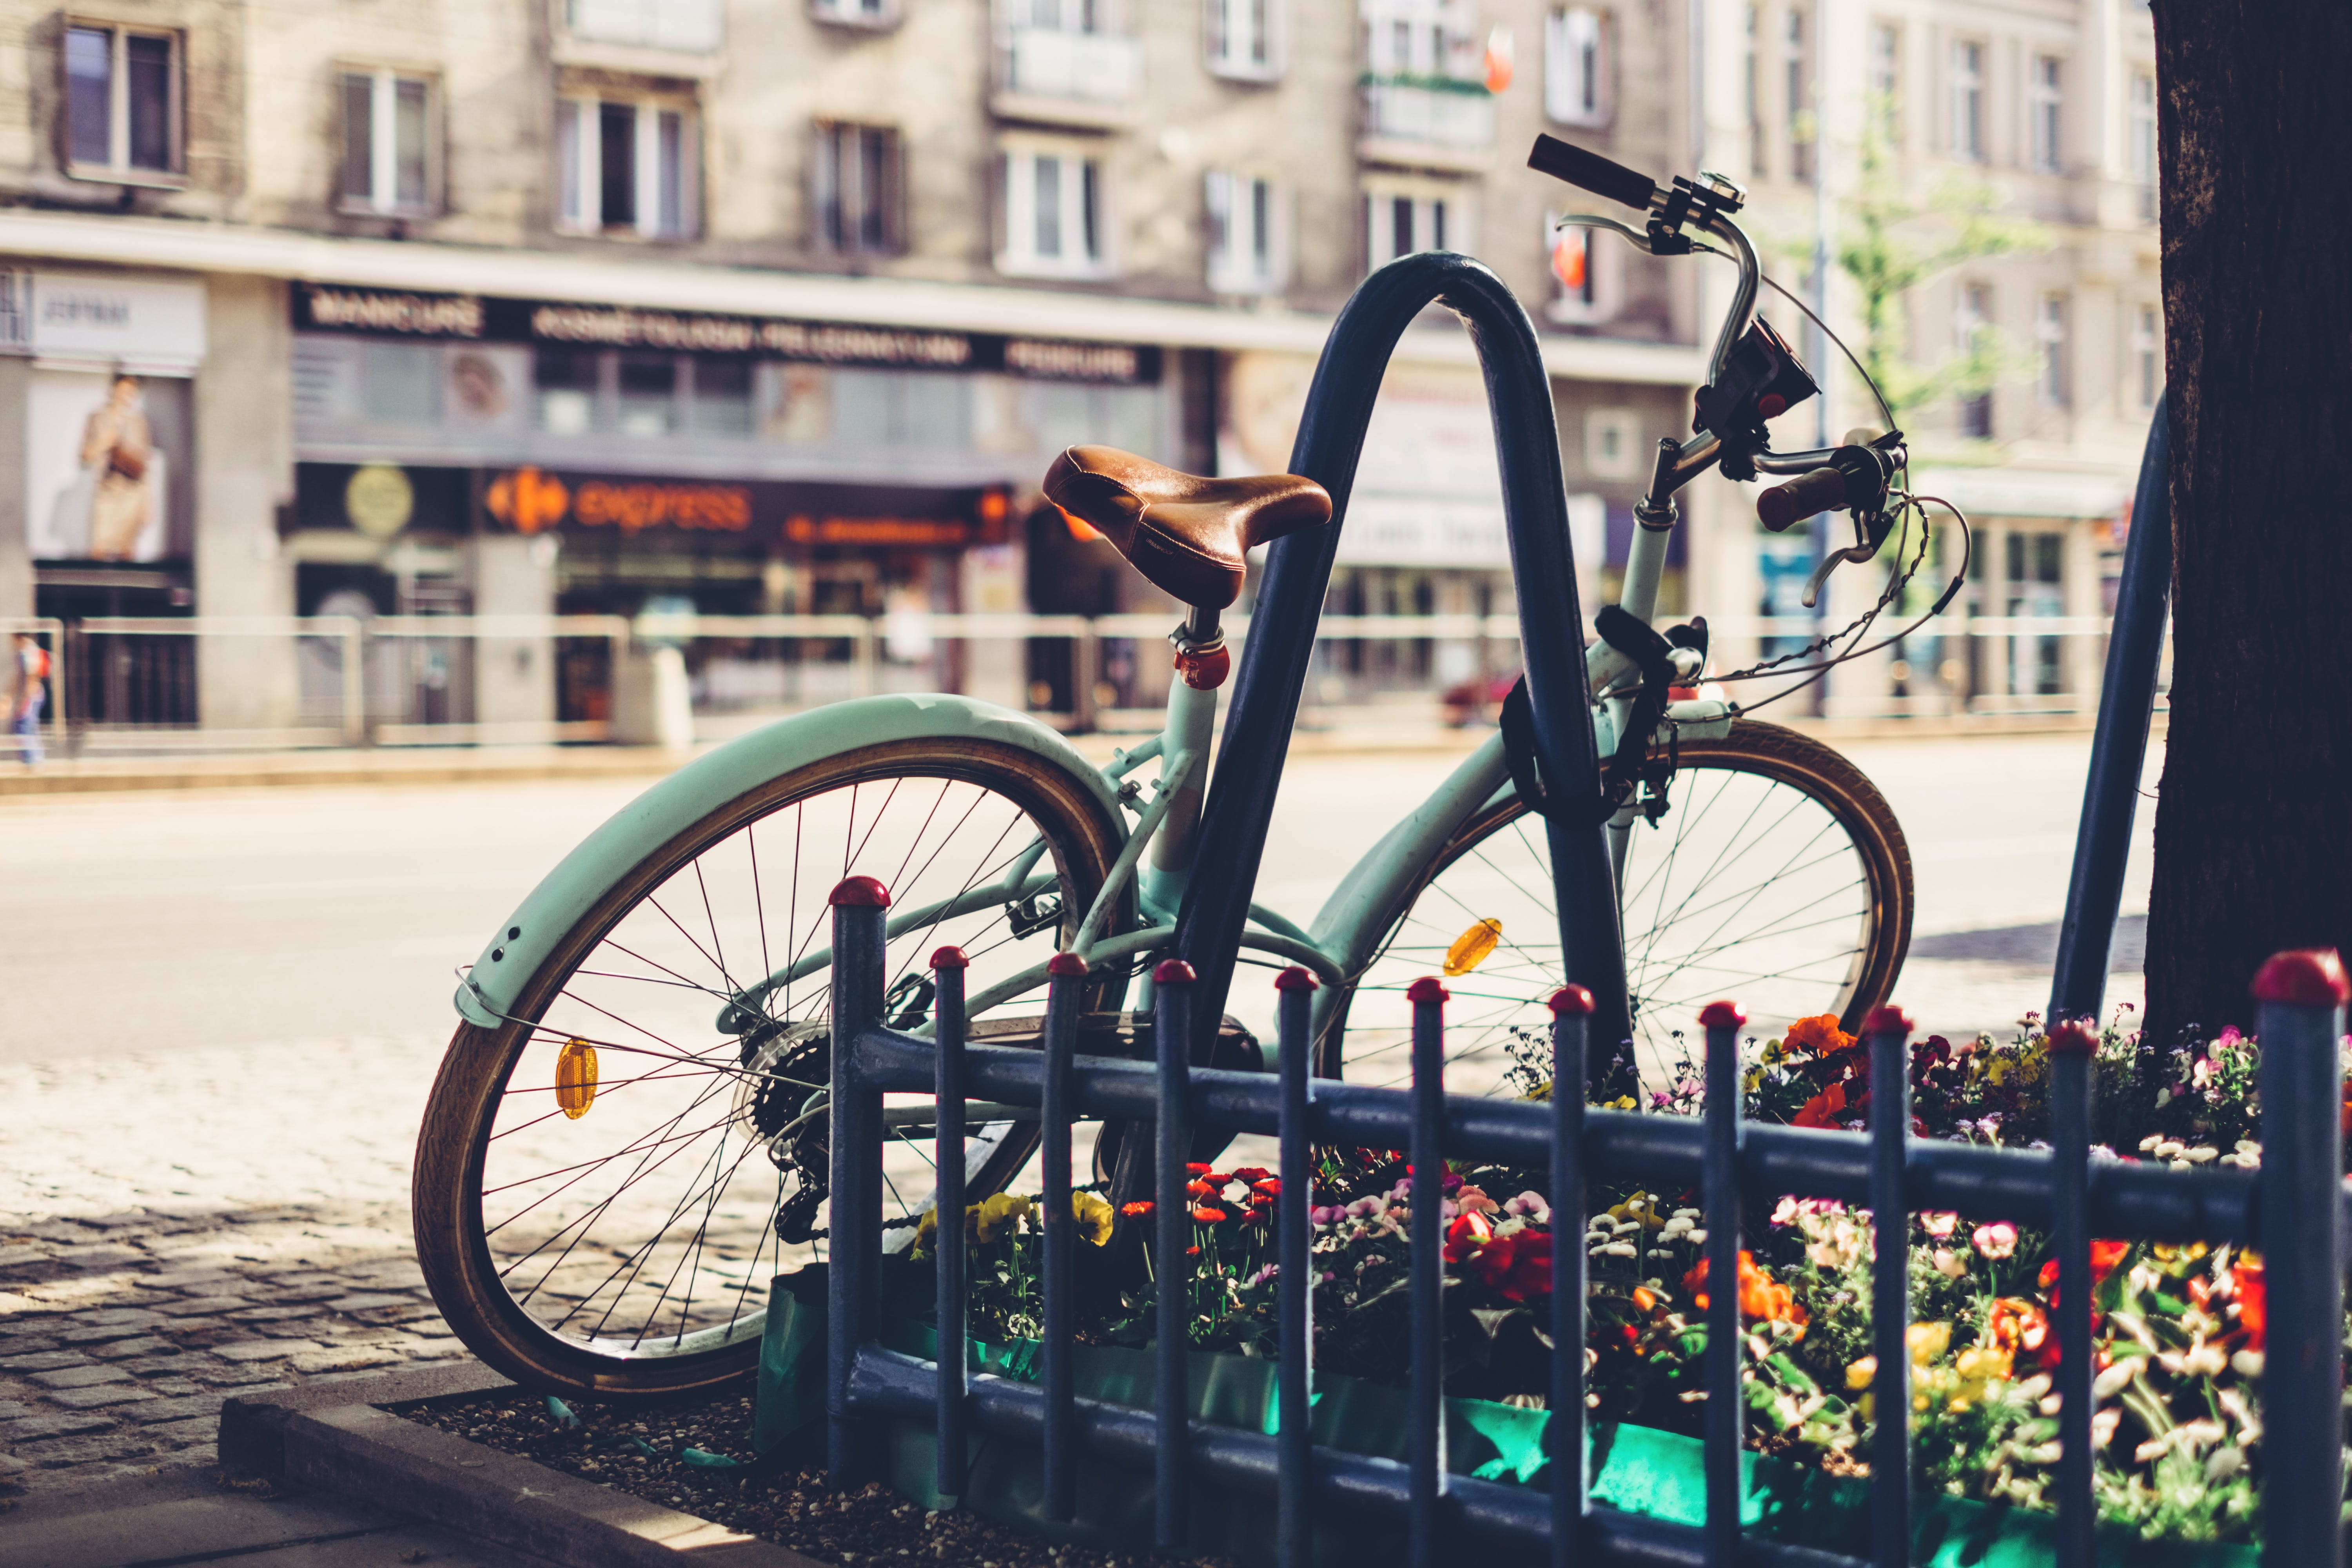 Photo of Teal Bicycle Locked on Black Metal Arch Near Tree